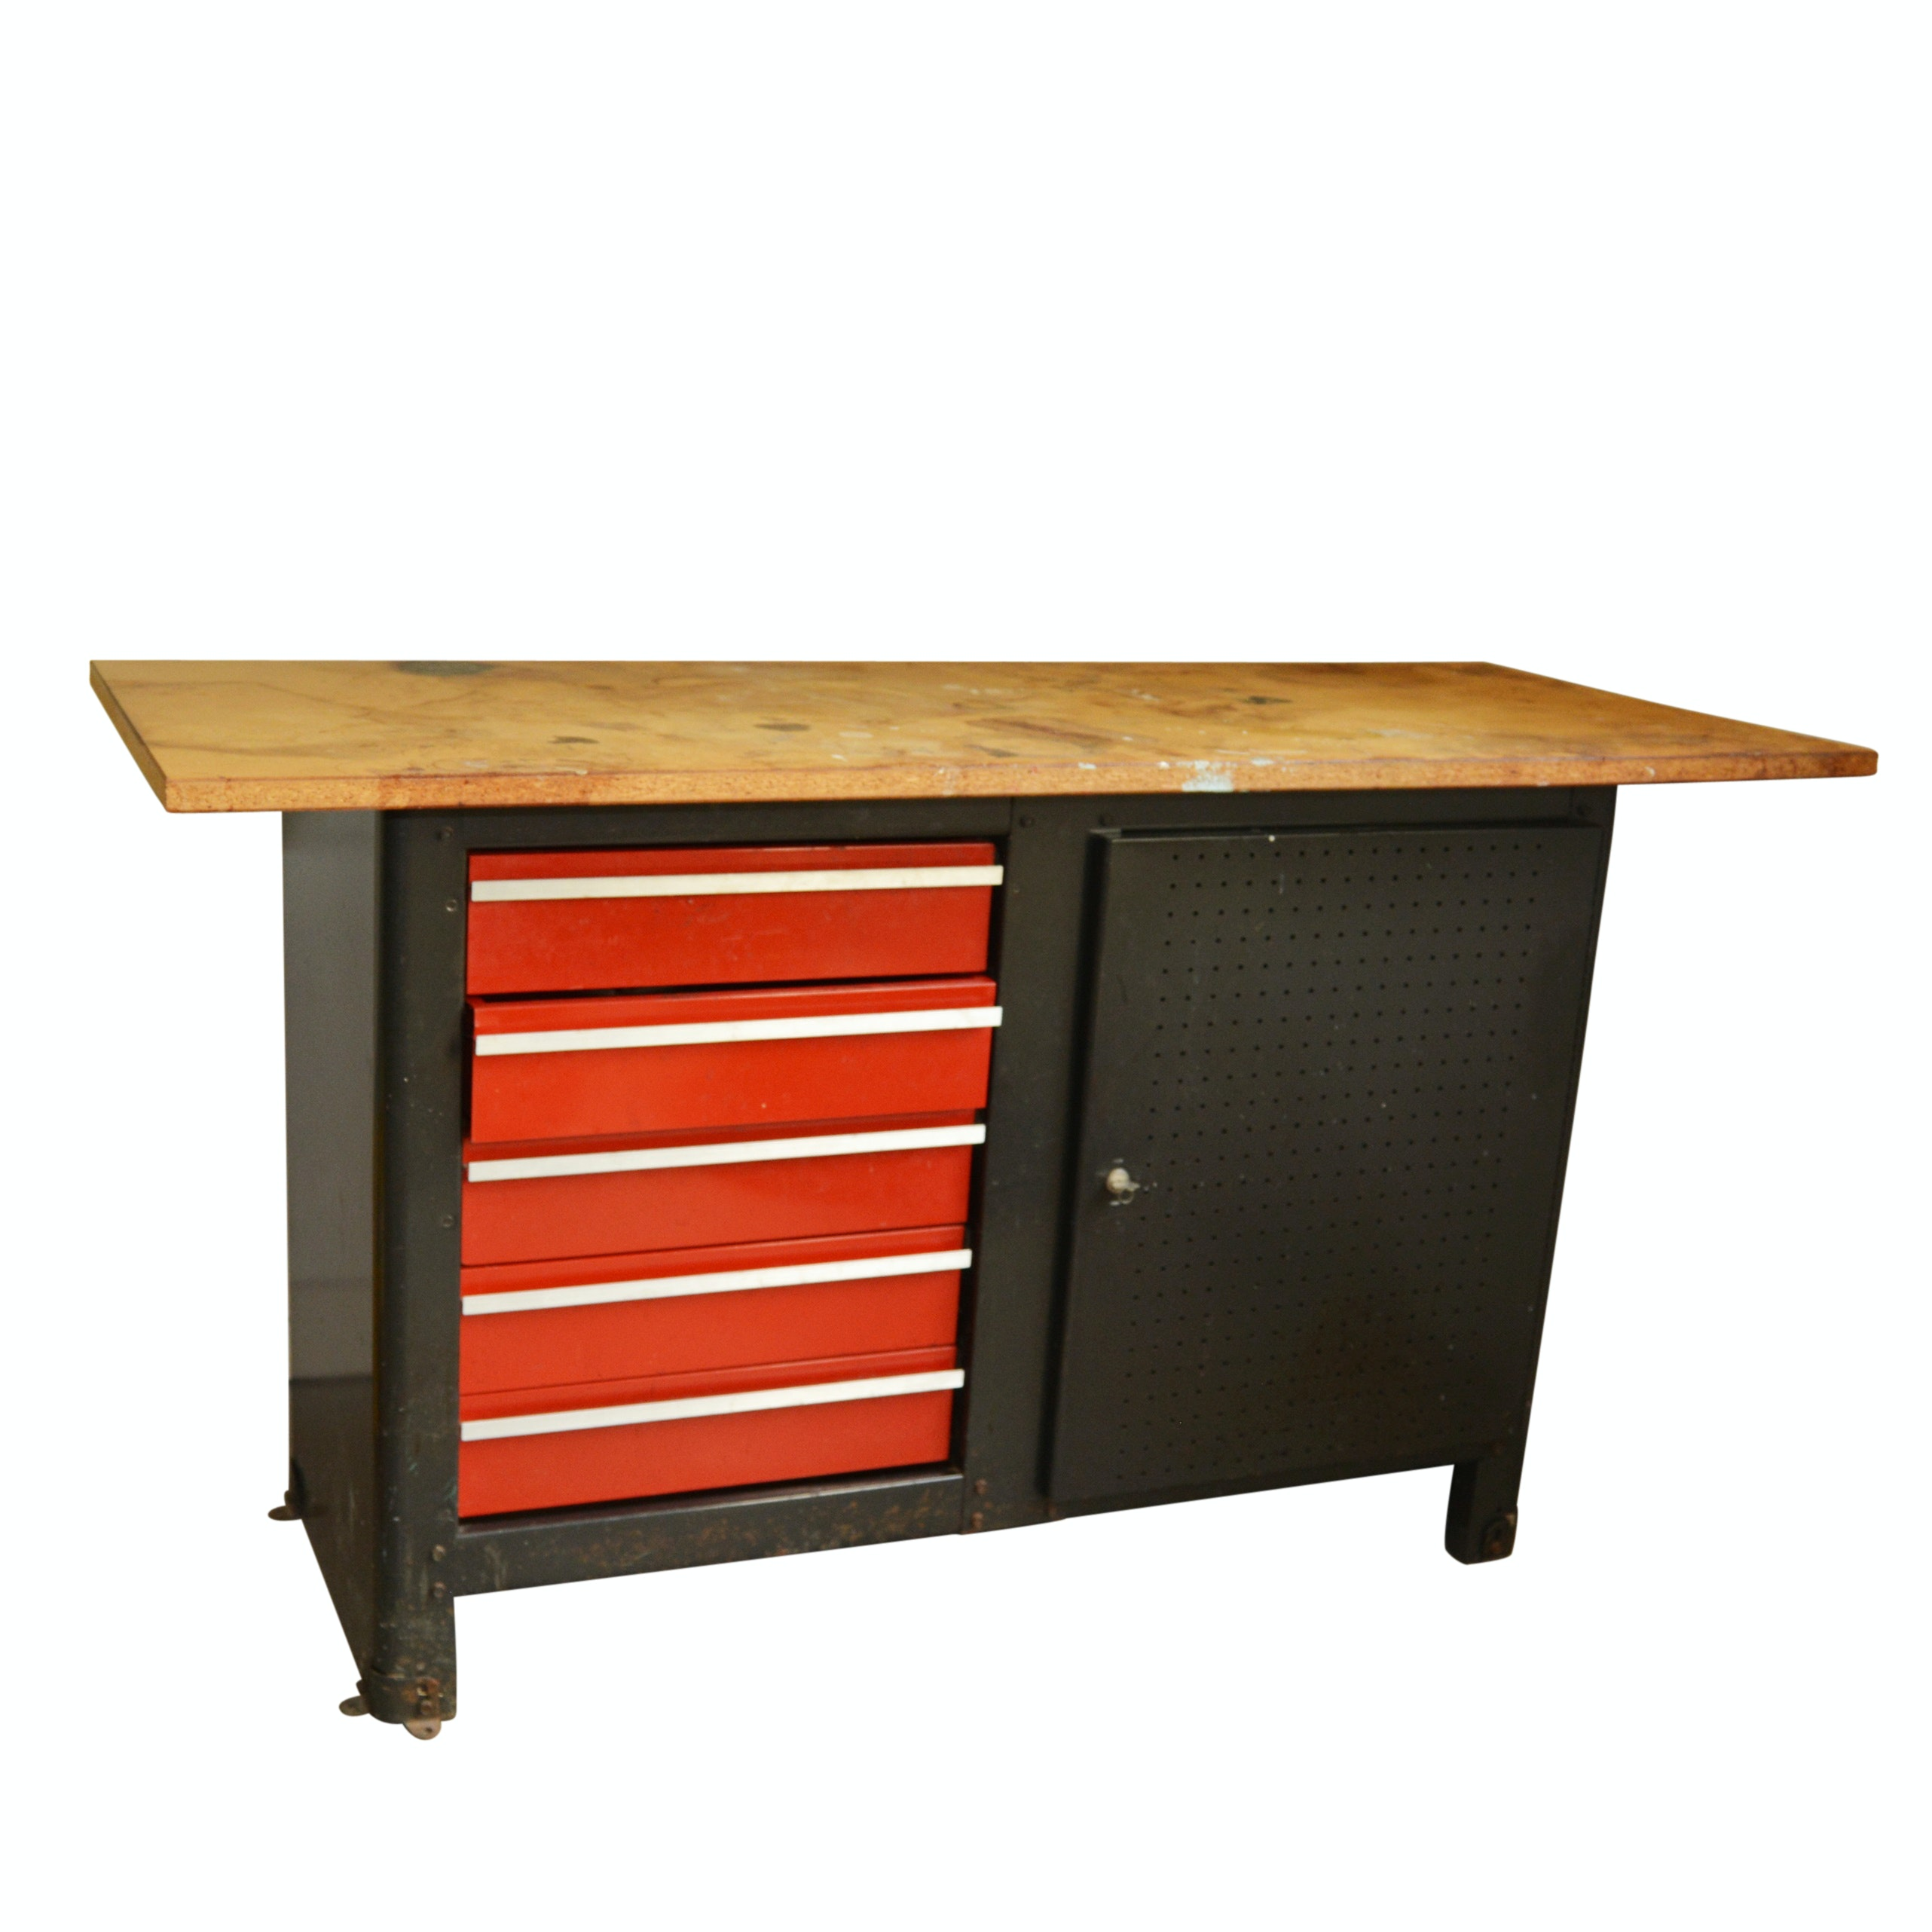 Work Bench and Cabinet Combination